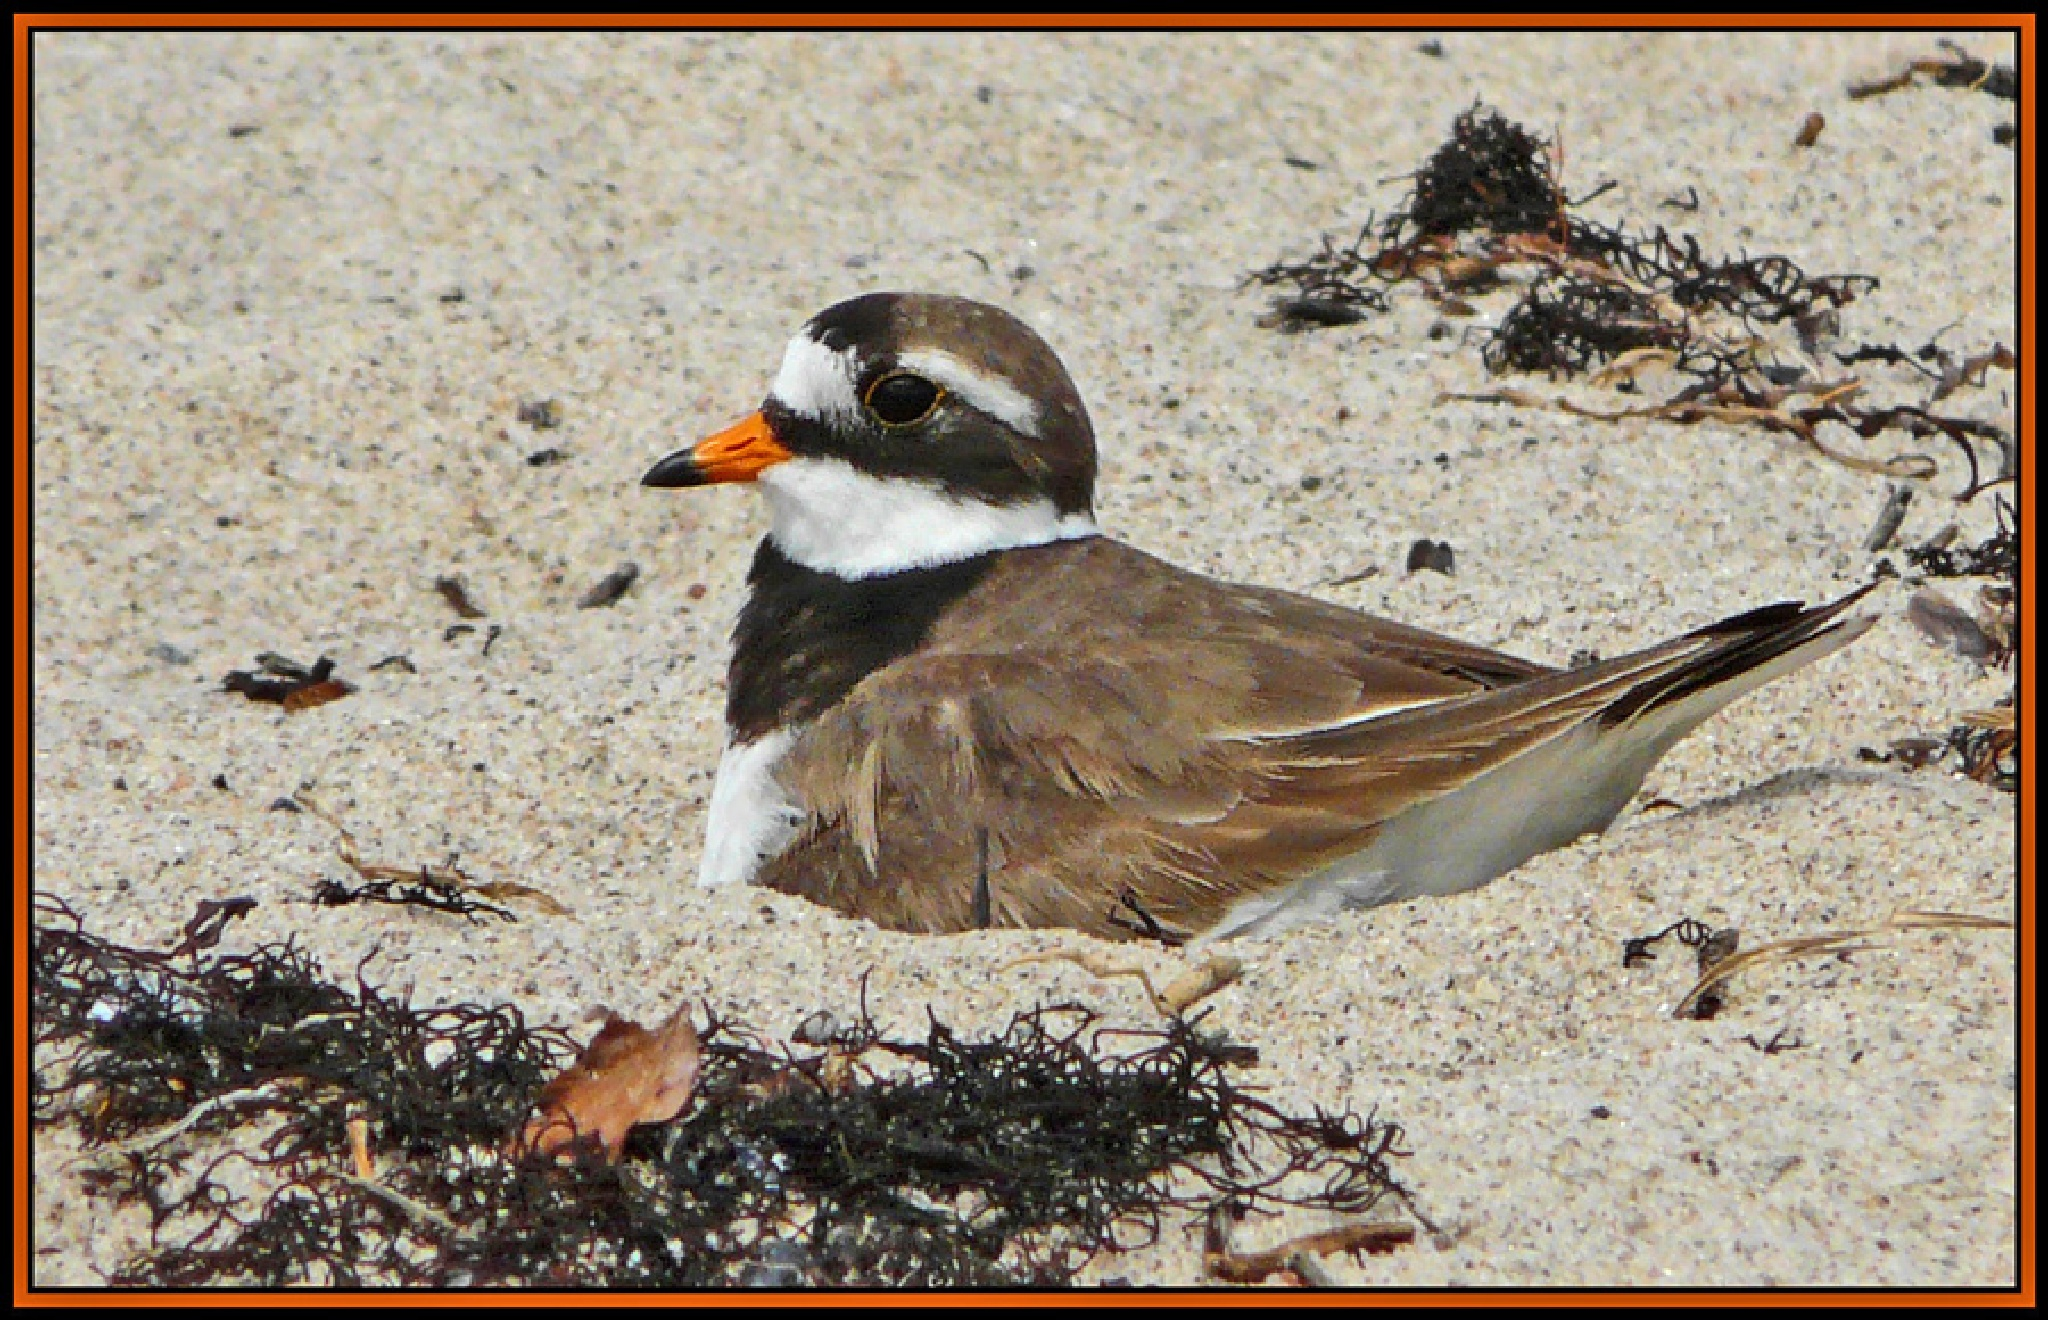 Common Ringed Plover (Charadrius hiaticula) in the nest by Dekayne